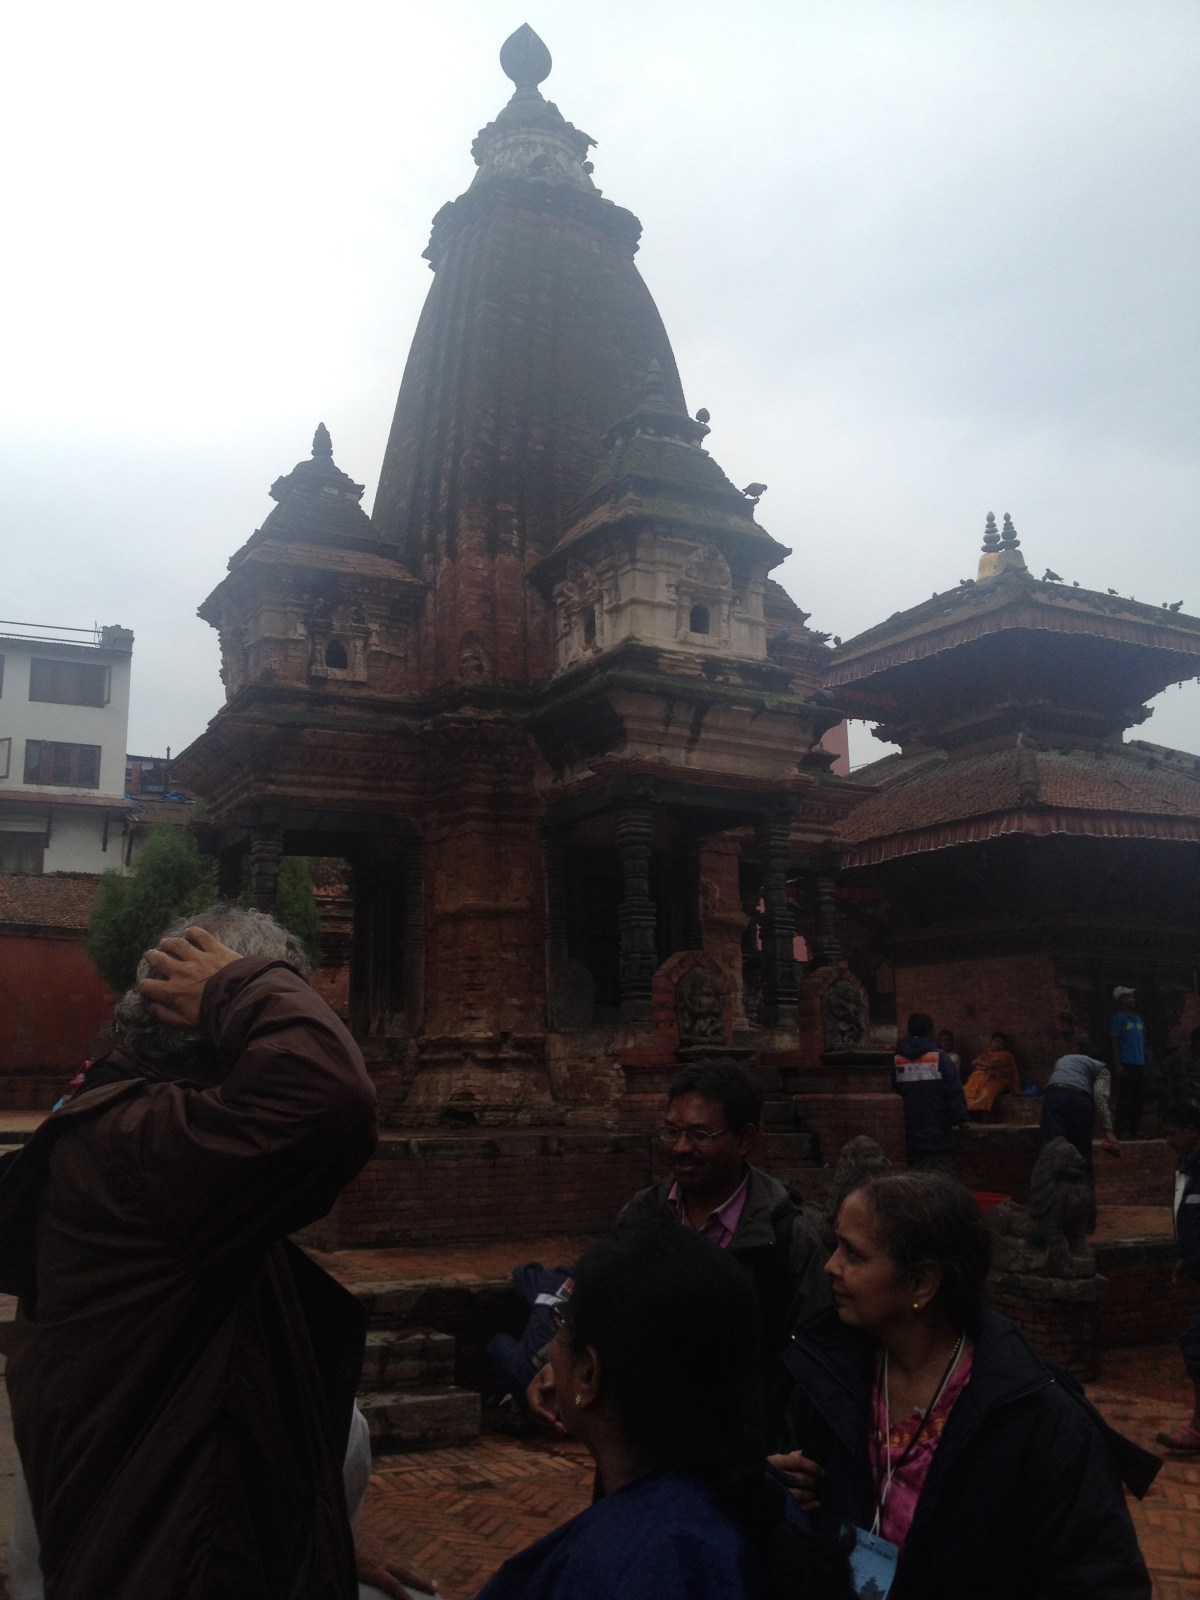 Nepal Travel: Entrance to Durbar Square Kathmandu